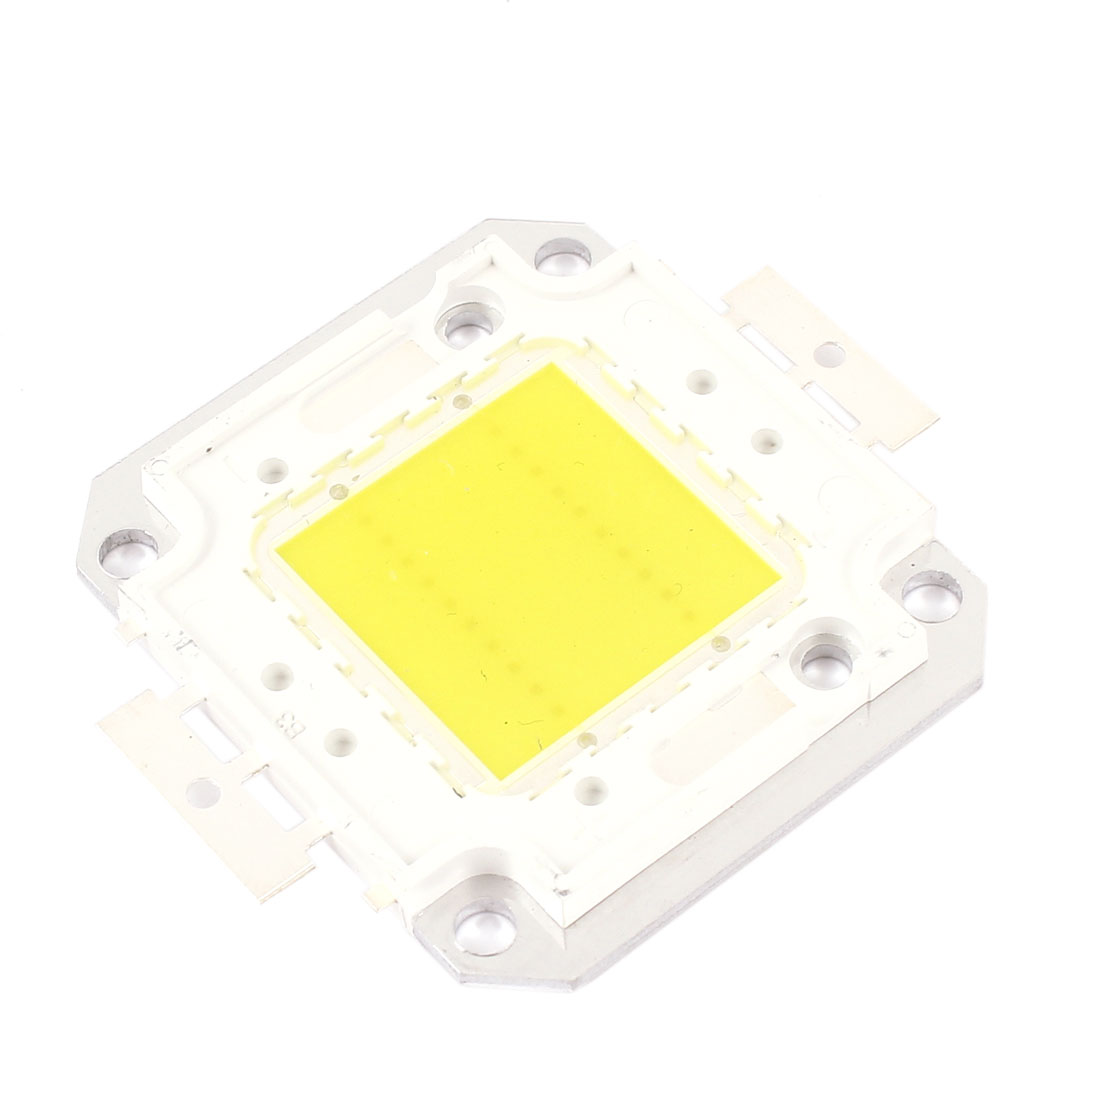 20Watt Yellow Mini LED Emitter Plate White Lamp Light 30-35V 650mA